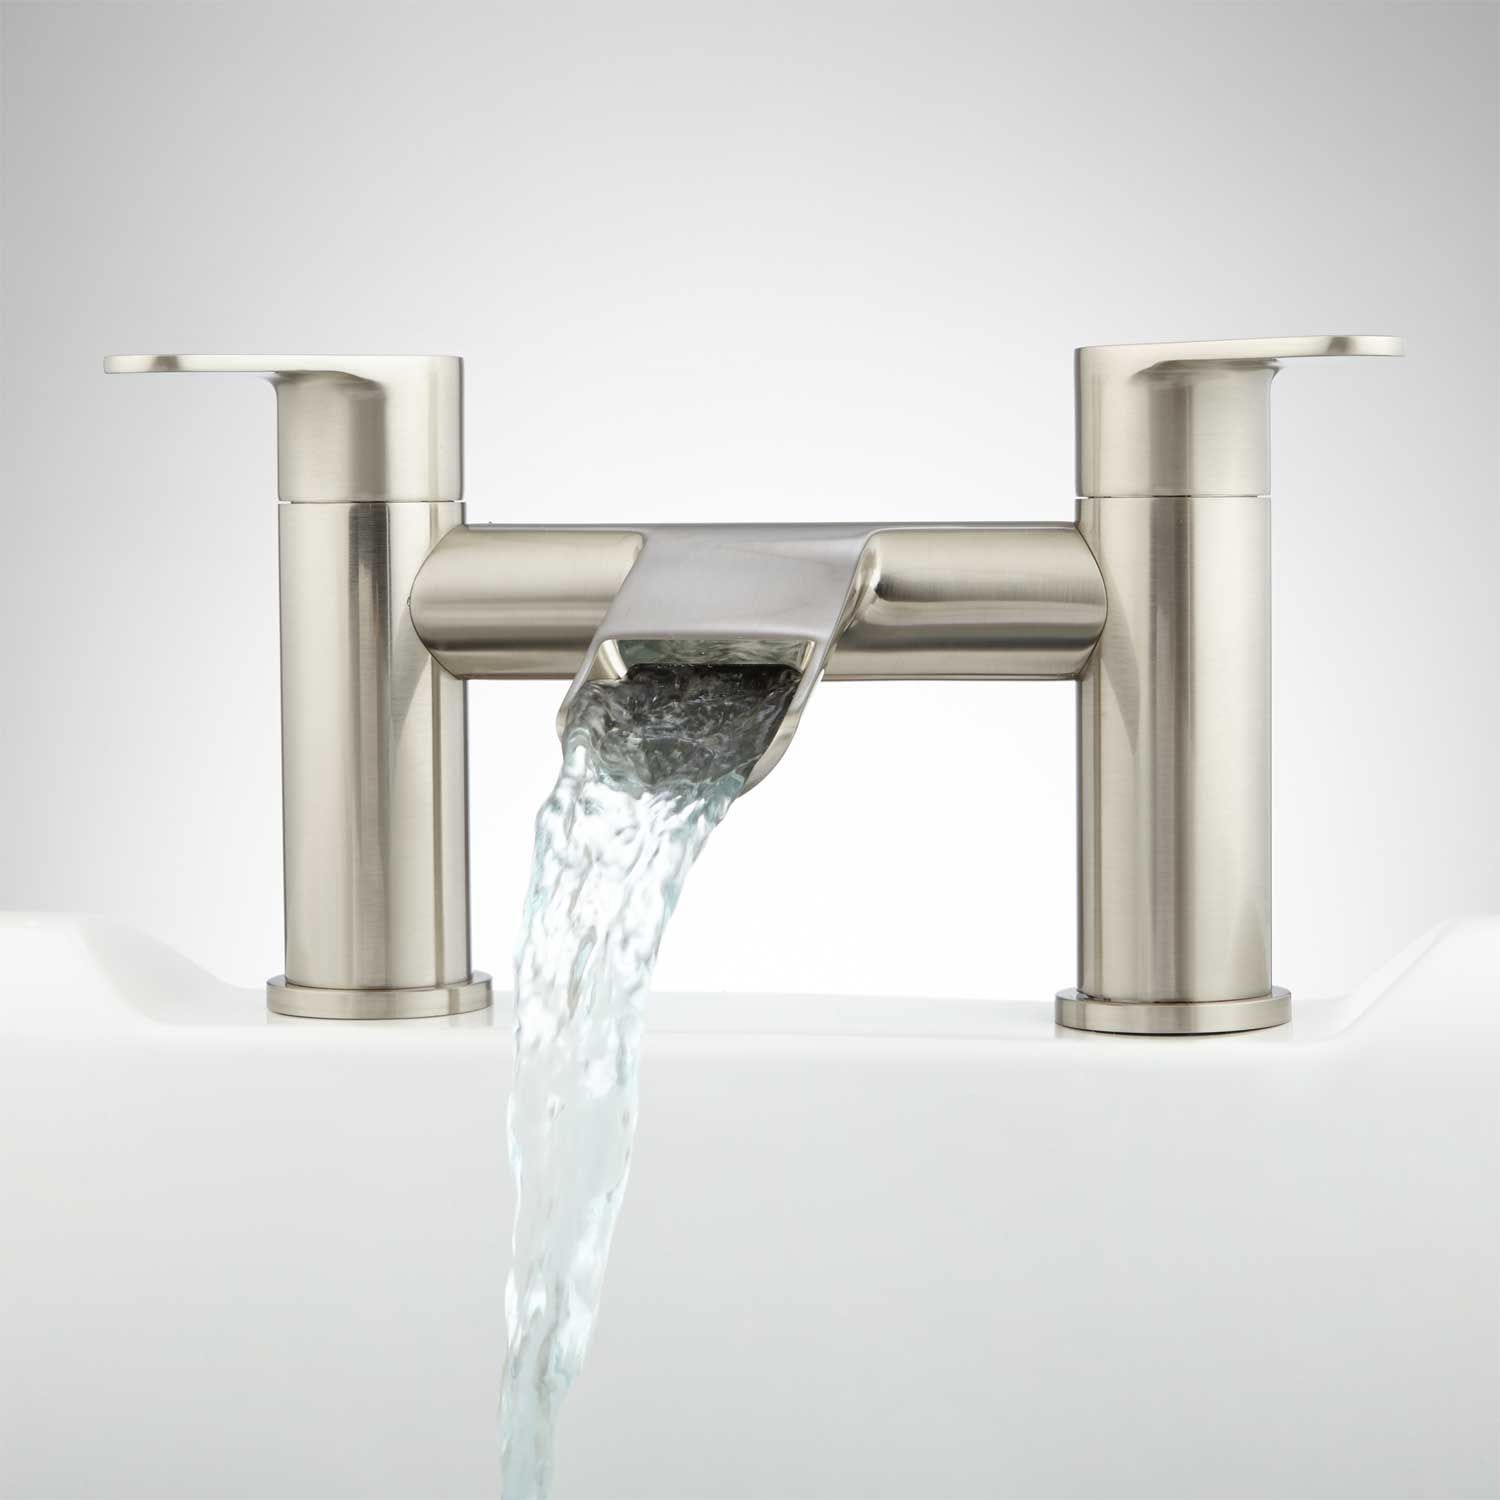 Pagosa Waterfall Deck-Mount Tub Faucet | Faucet, Tubs and Decking